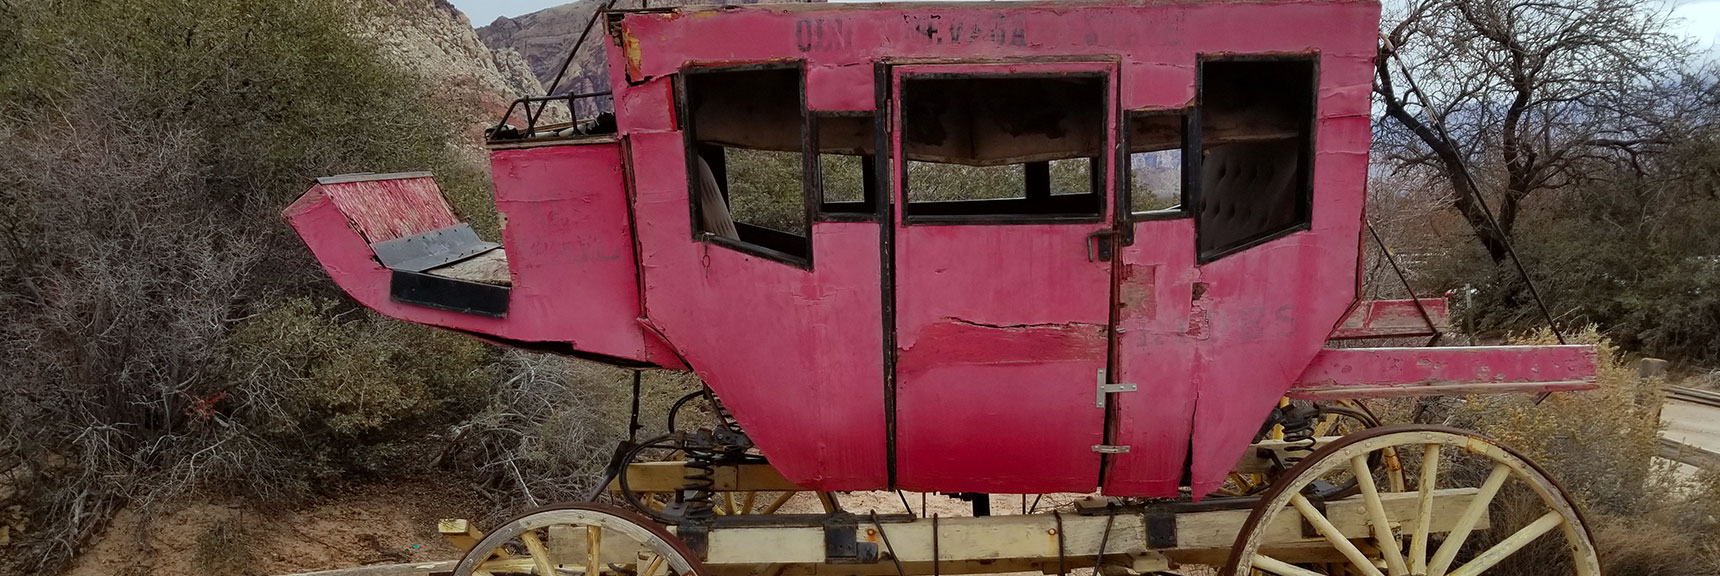 Old Nevada Stage Coach at Bonnie Springs Ranch, Nevada